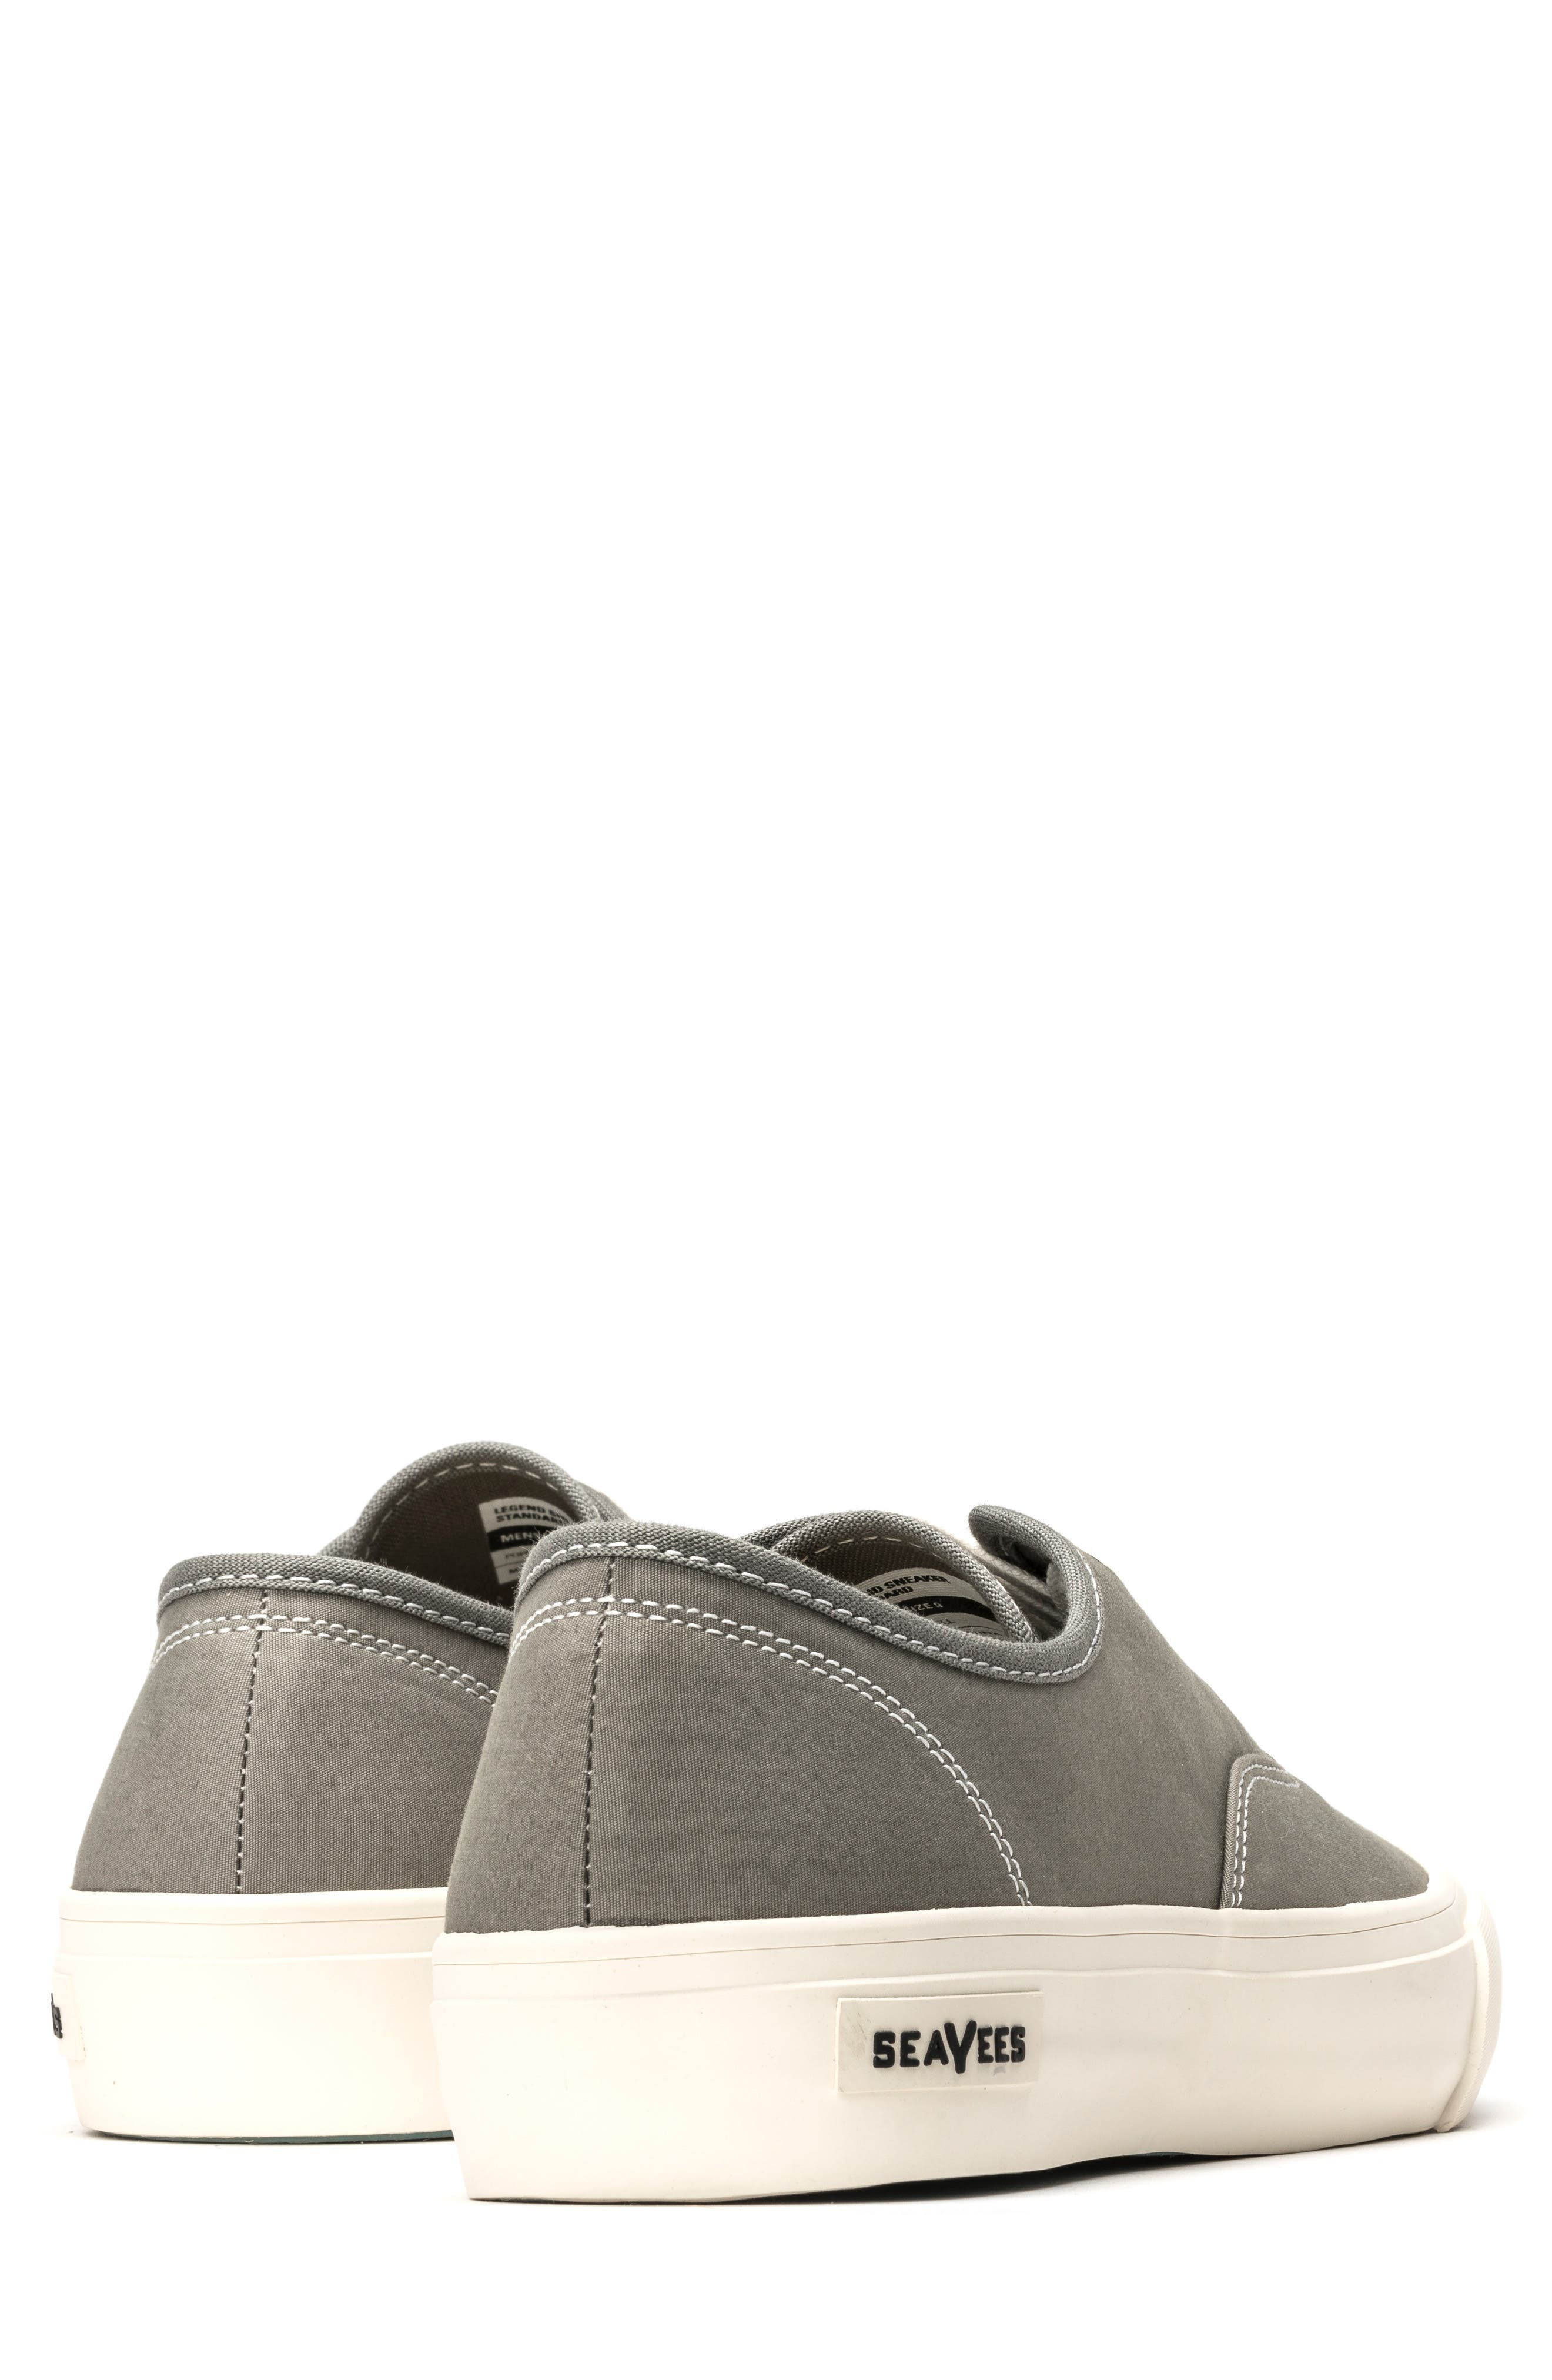 Legend Standard Sneaker,                             Alternate thumbnail 2, color,                             GRANITE GREY